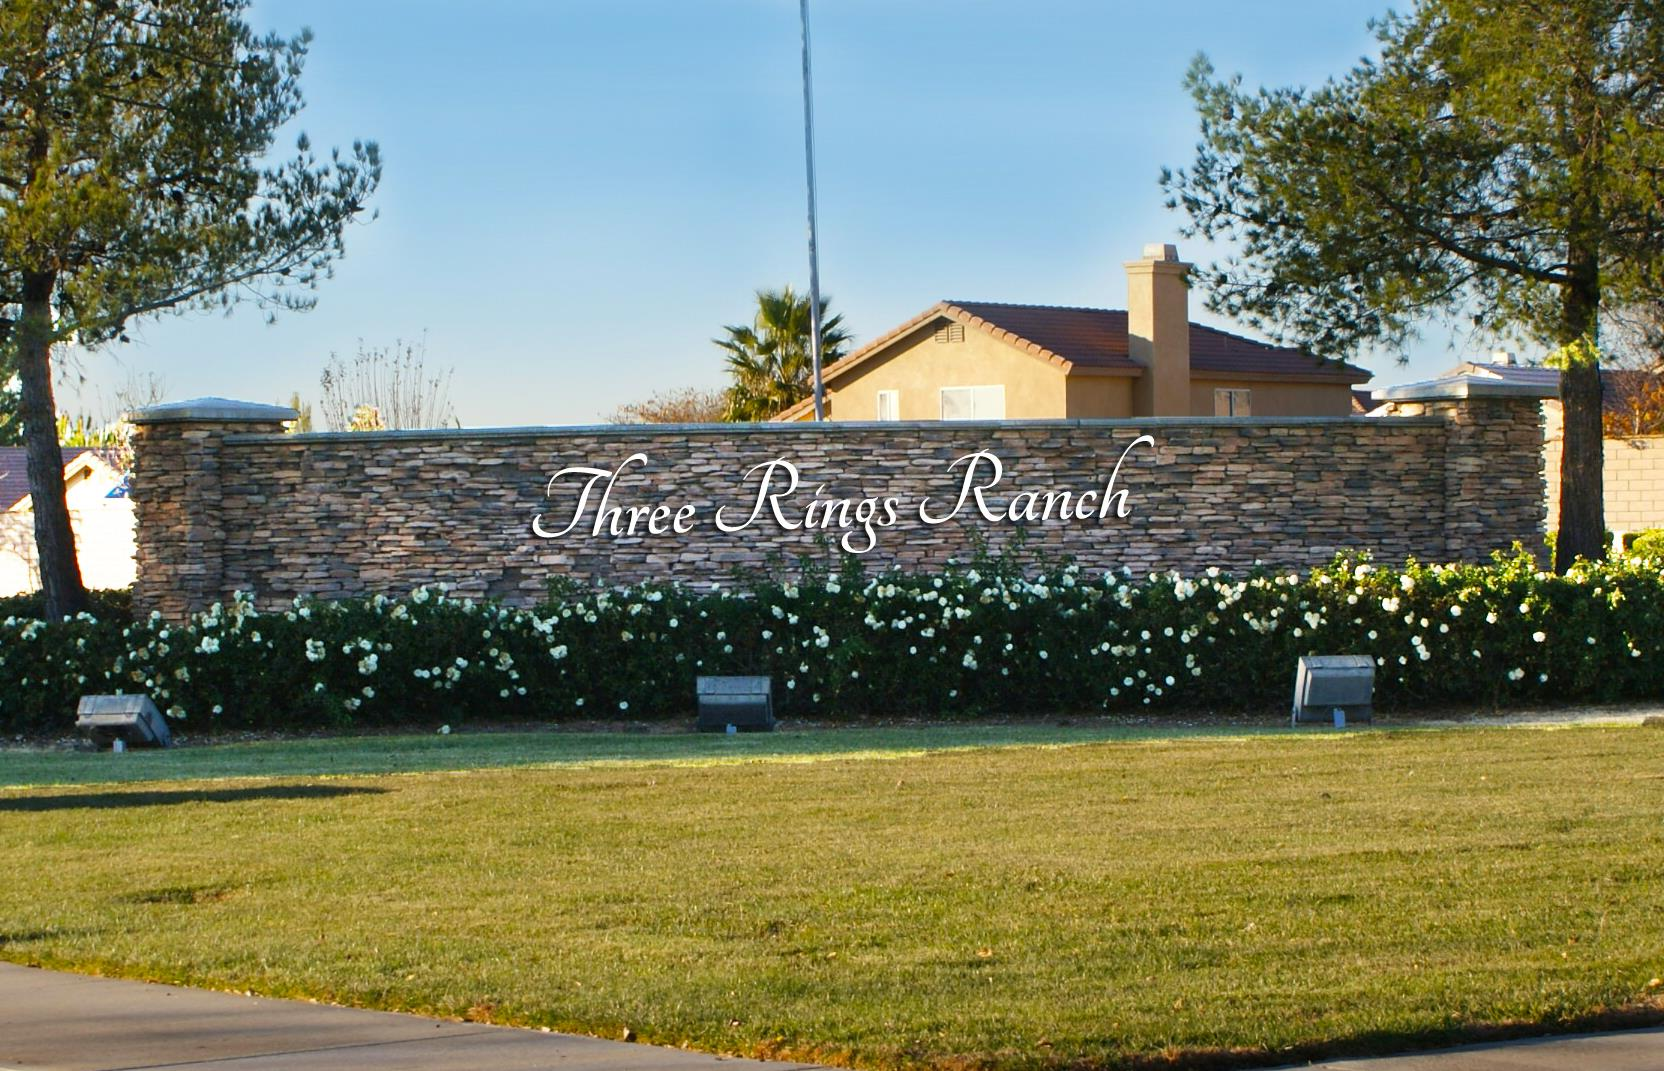 Three Rings Ranch